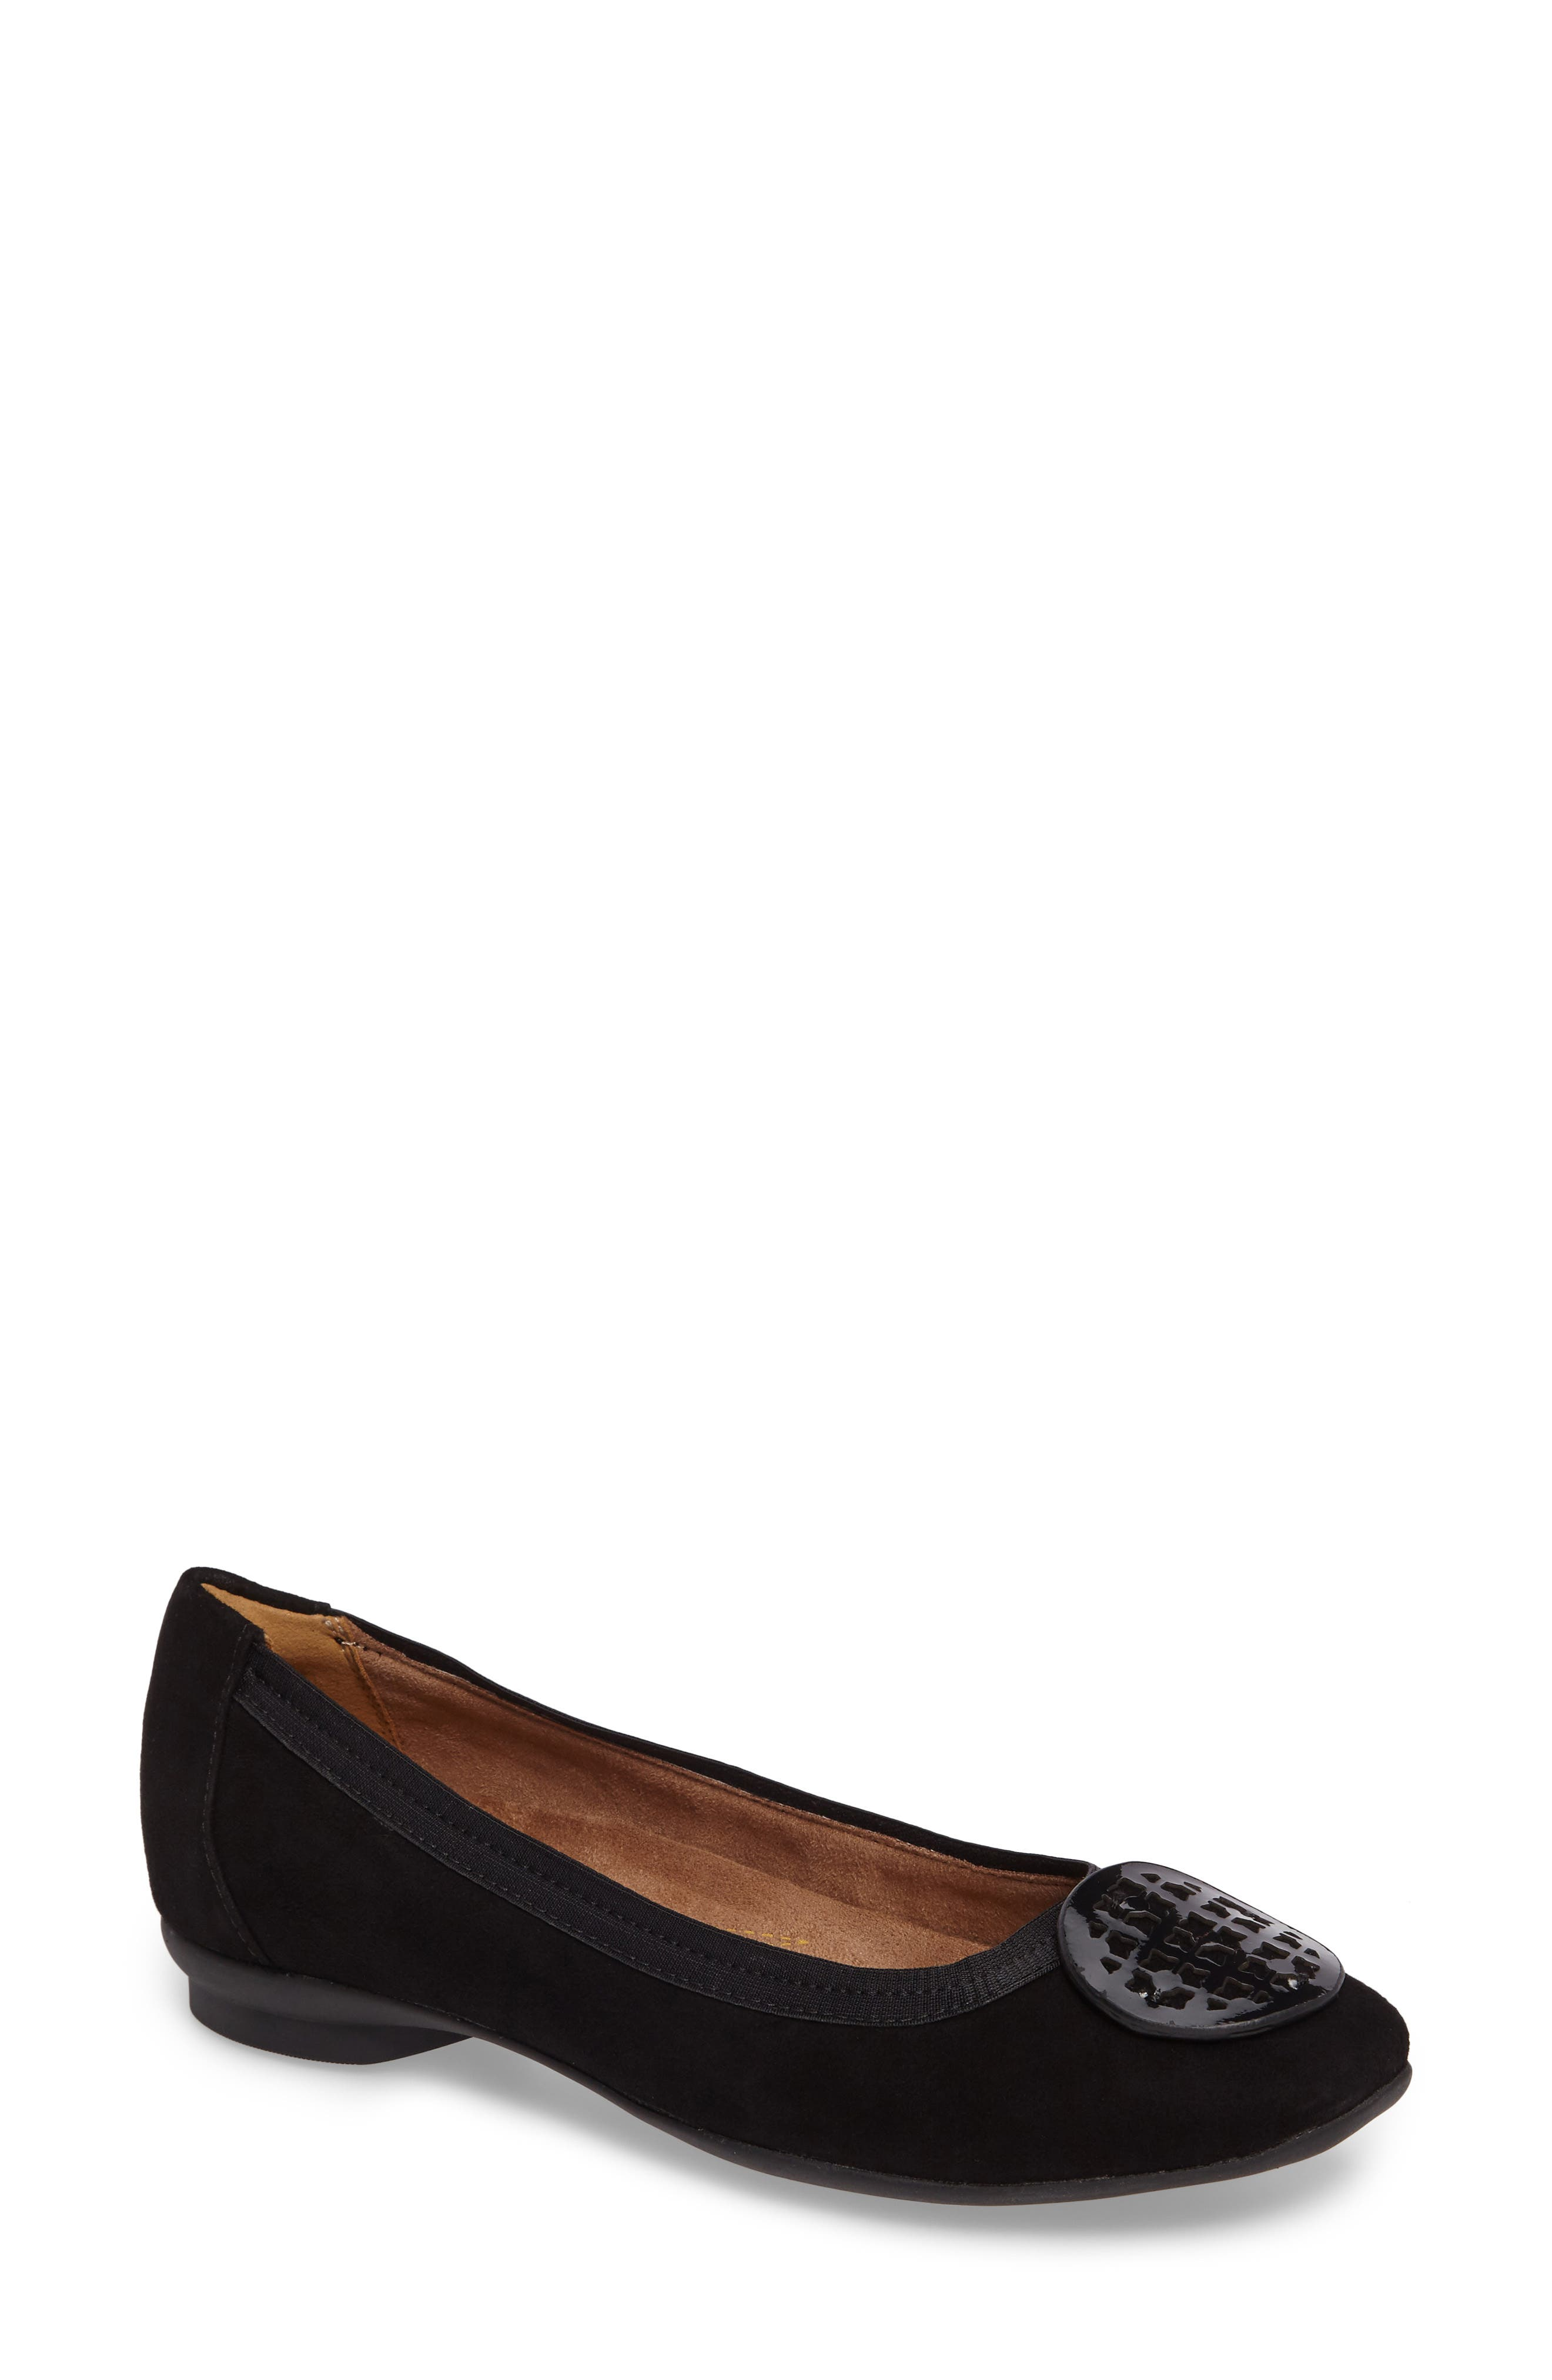 'Candra Blush' Flat,                         Main,                         color, Black Suede